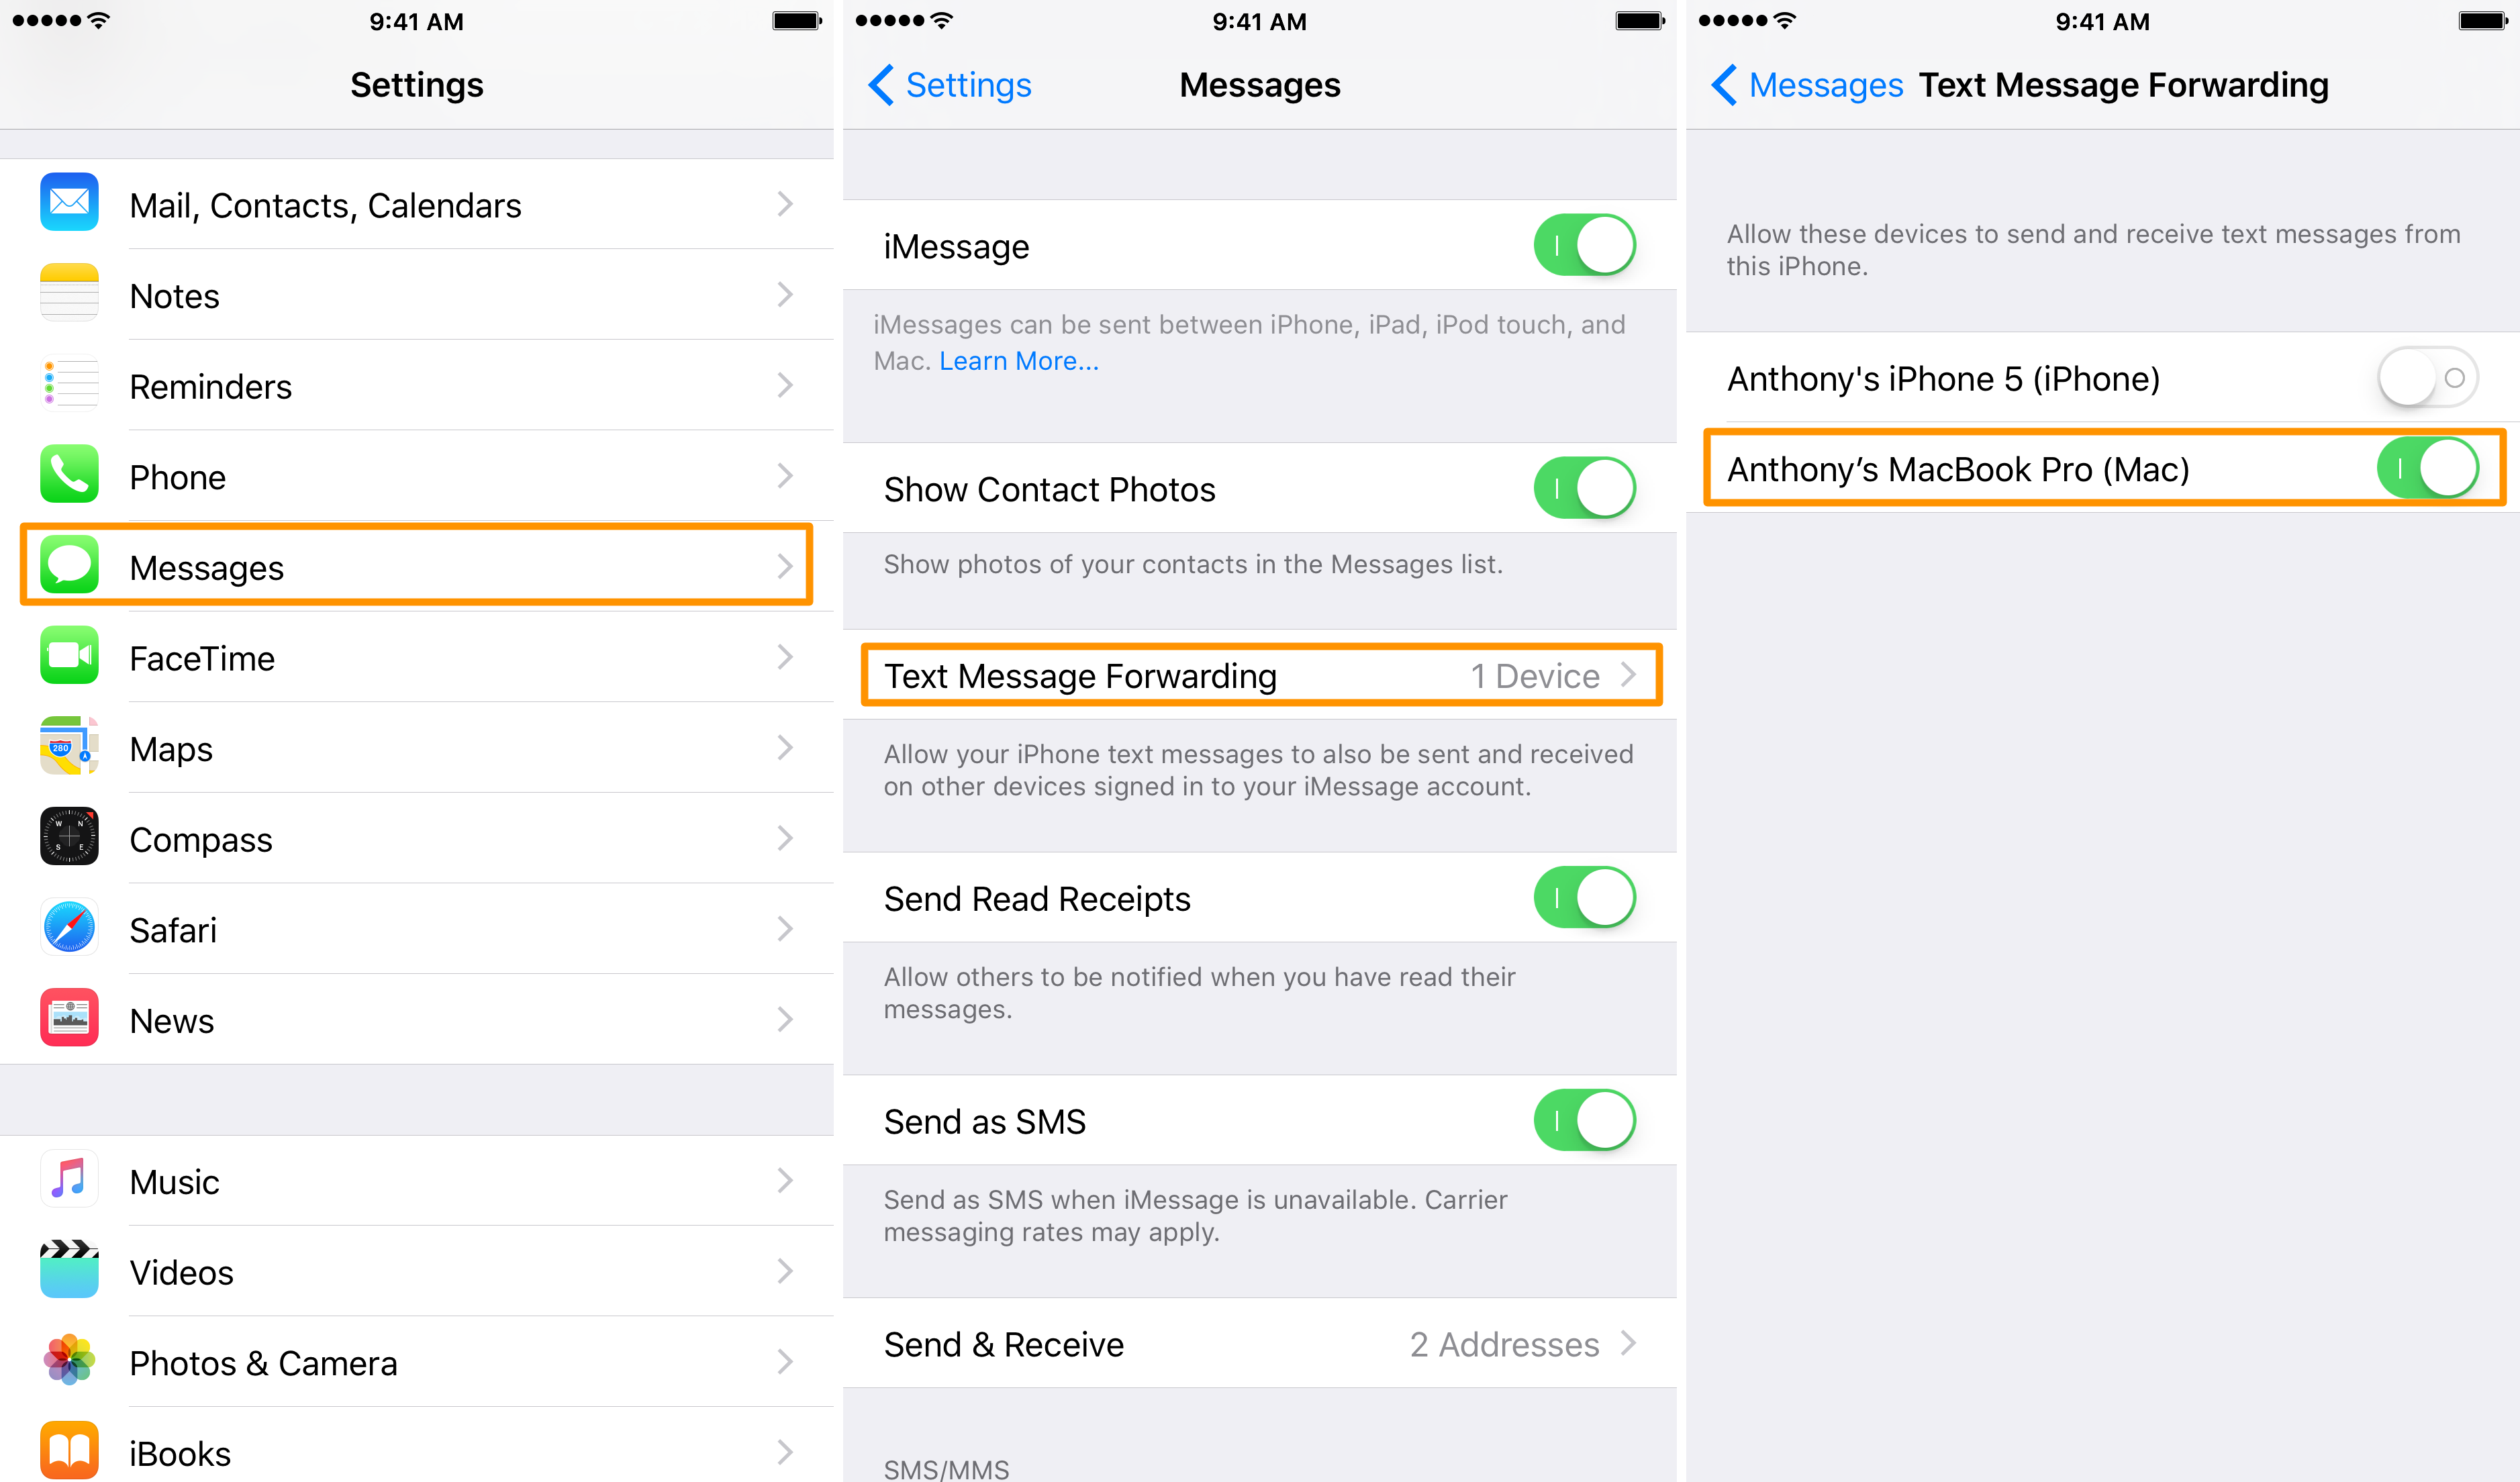 Enable text message forwarding on your iPhone